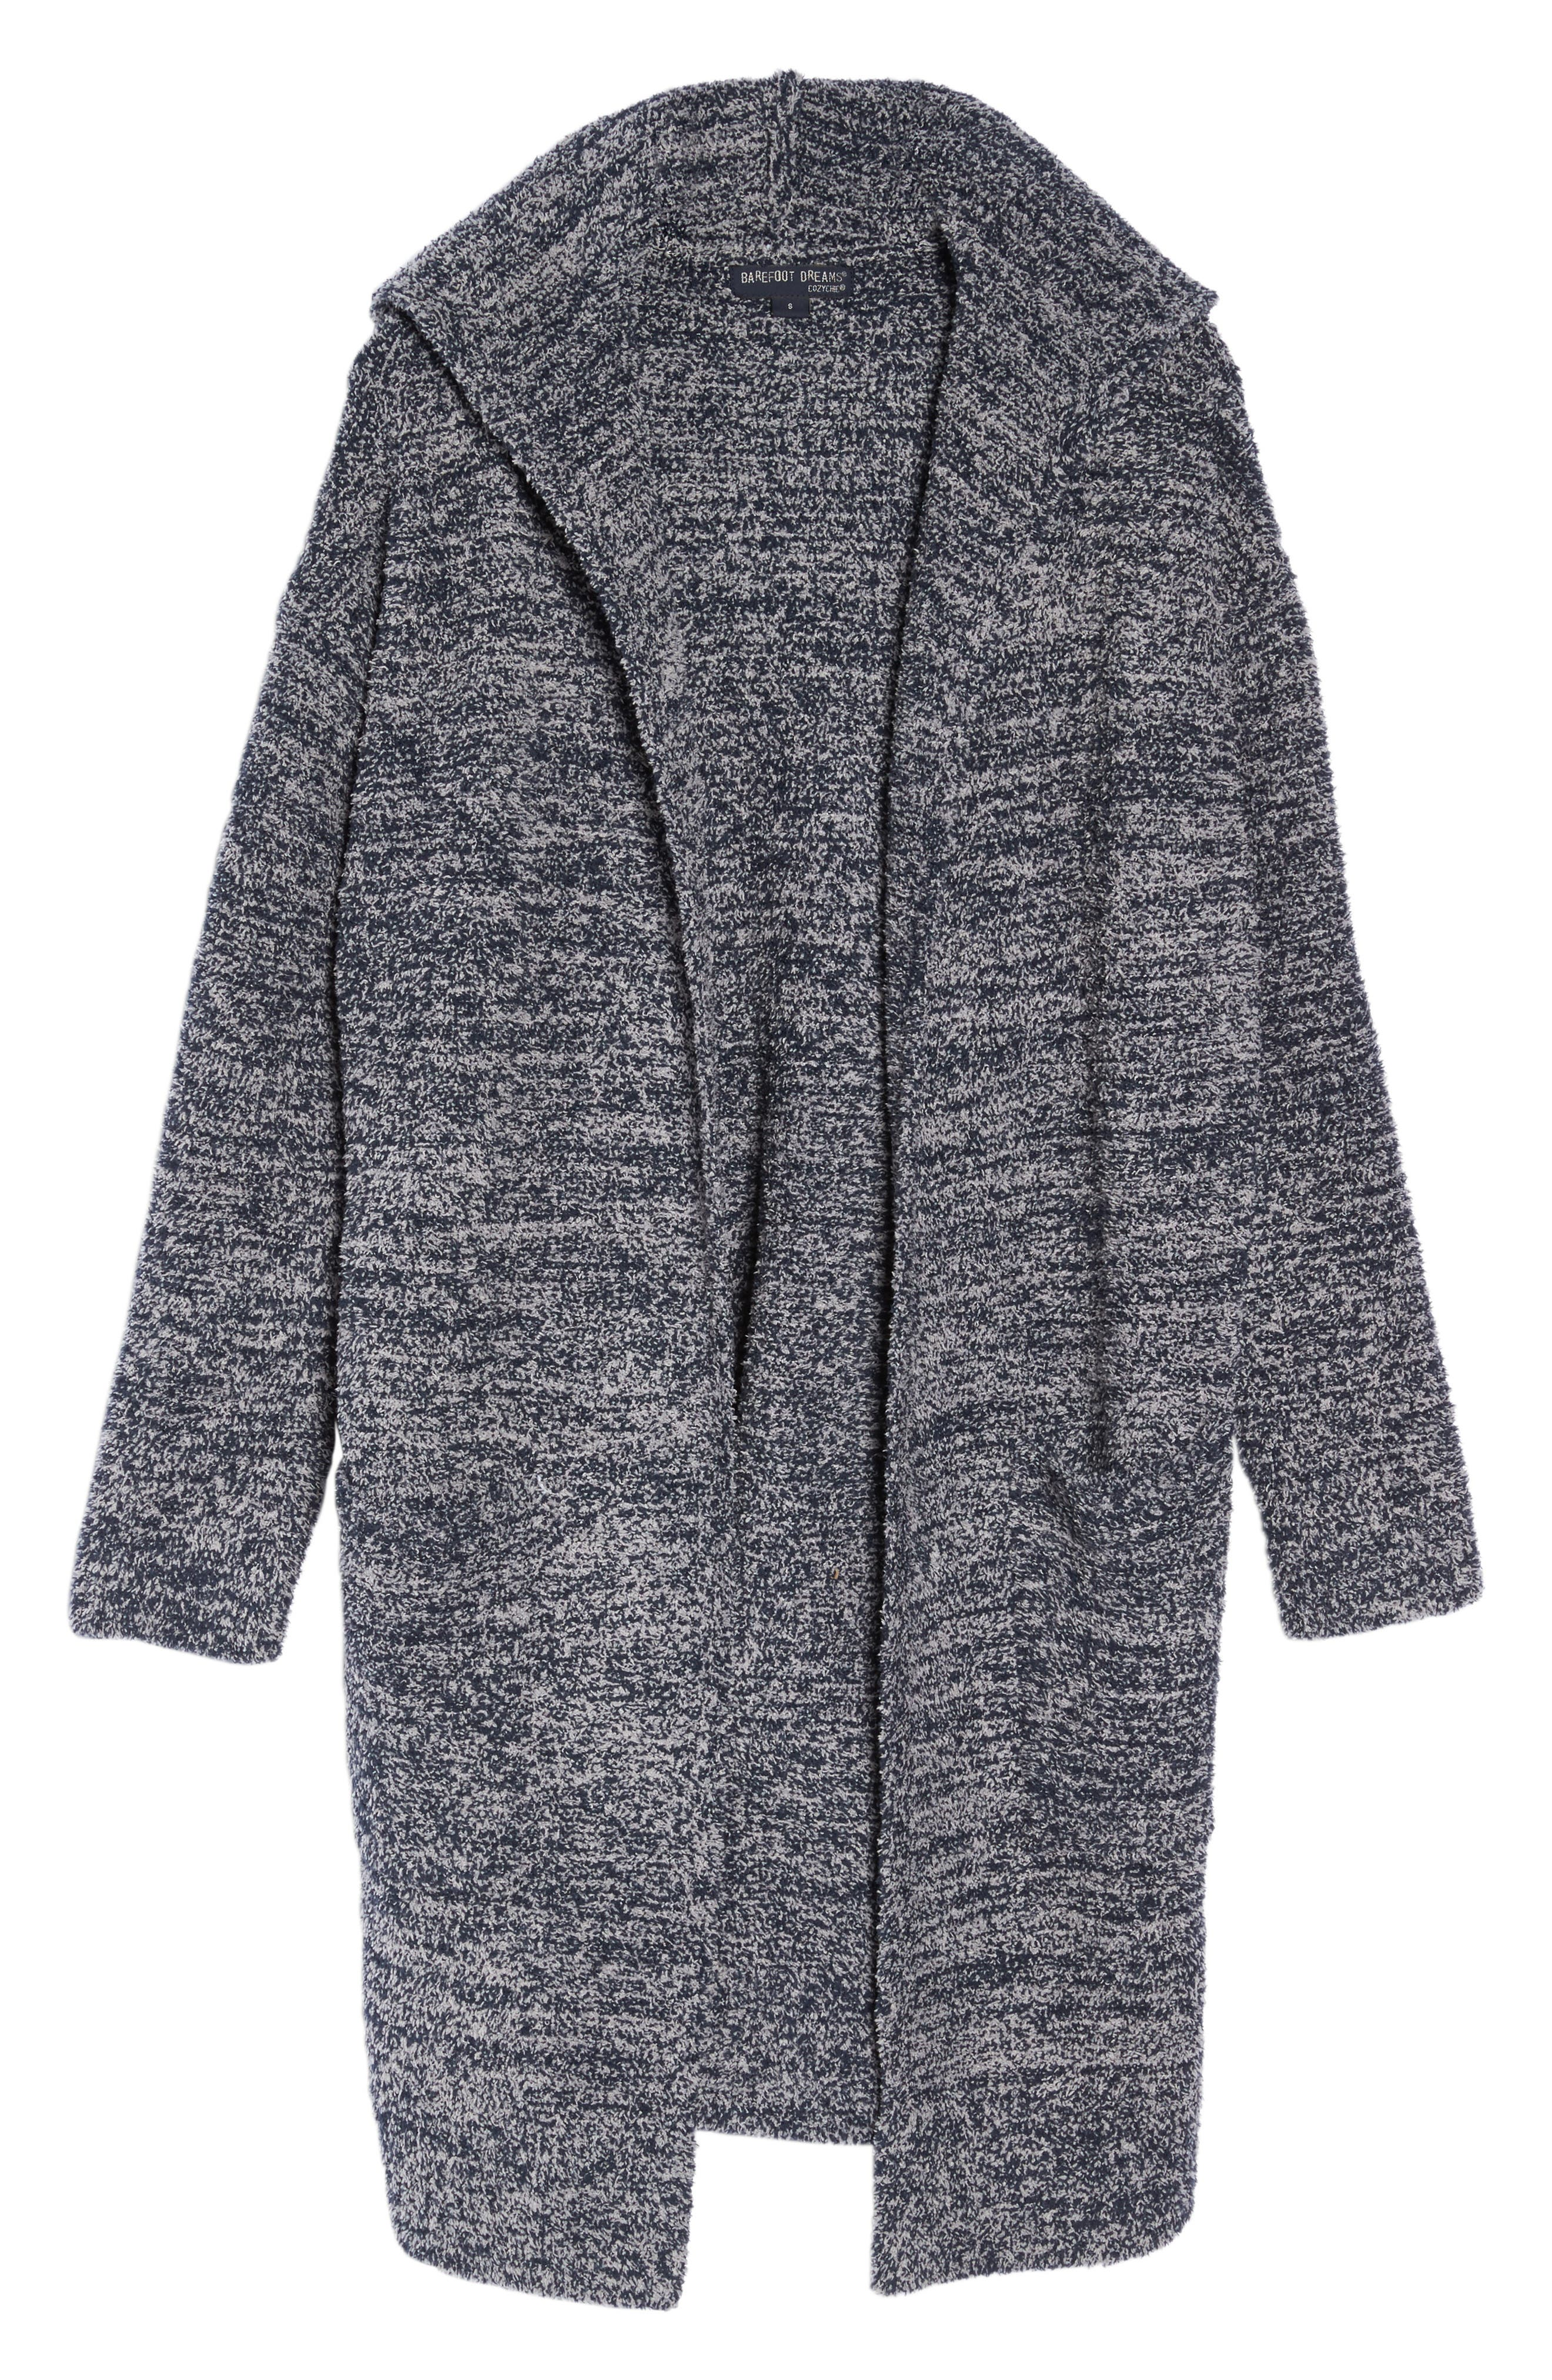 CozyChic<sup>®</sup> California Lounge Coat,                             Main thumbnail 1, color,                             Indigo/ Dove